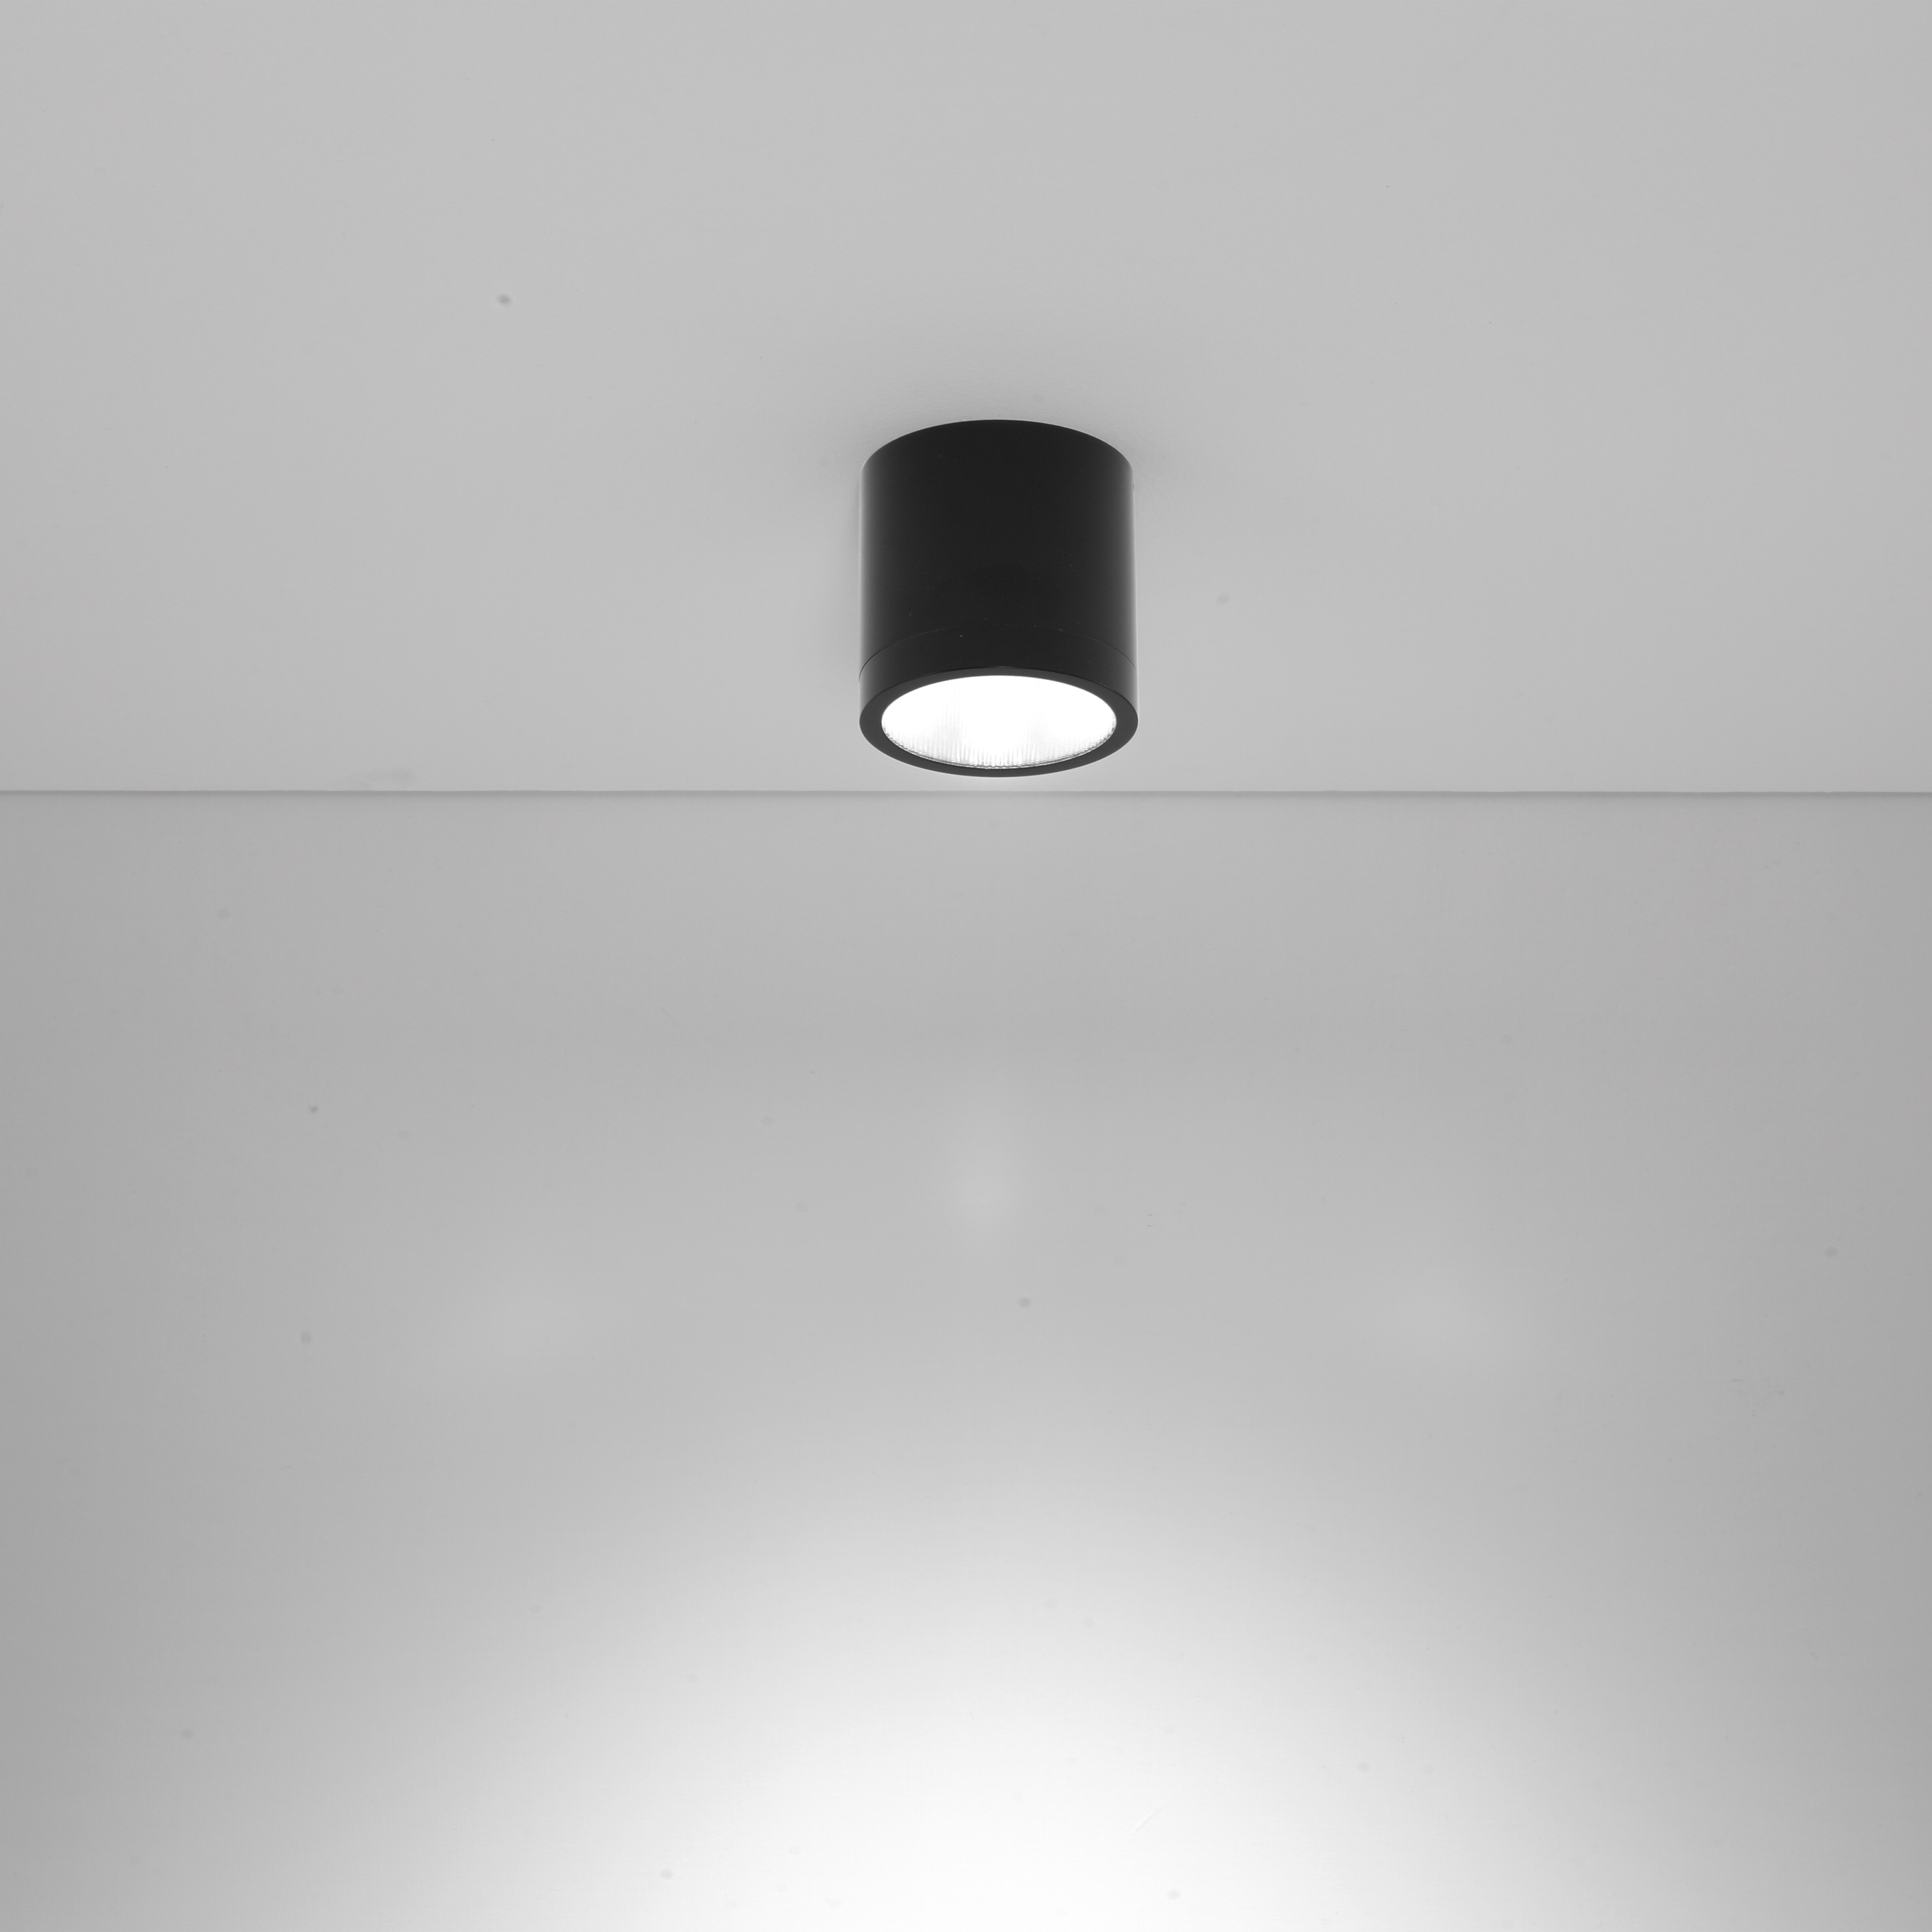 Ceiling and suspension light - DL013